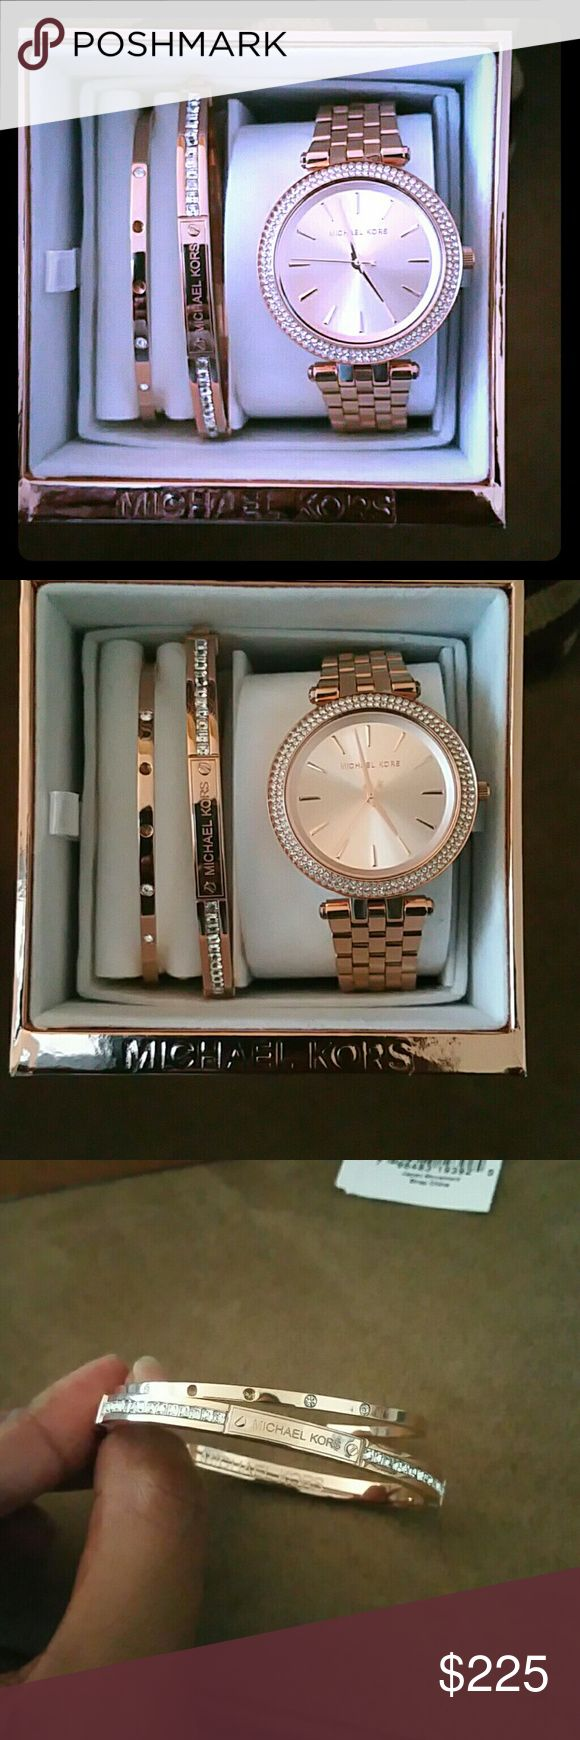 1DAY SALE! Michael Kors Mini Darci Watch/Bracelet Beautiful Michael Kors Mini Darci watch set in Rose tone. Watch features clear crystals around the dial and it is 33 MM. Michael Kors logo bracelet with clear crystals has a hinge closure. The open cuff bracelet has 2 crystals missing. Other than that great condition!  Worn twice. ***PRICE IS FIRM *** Michael Kors Jewelry Bracelets